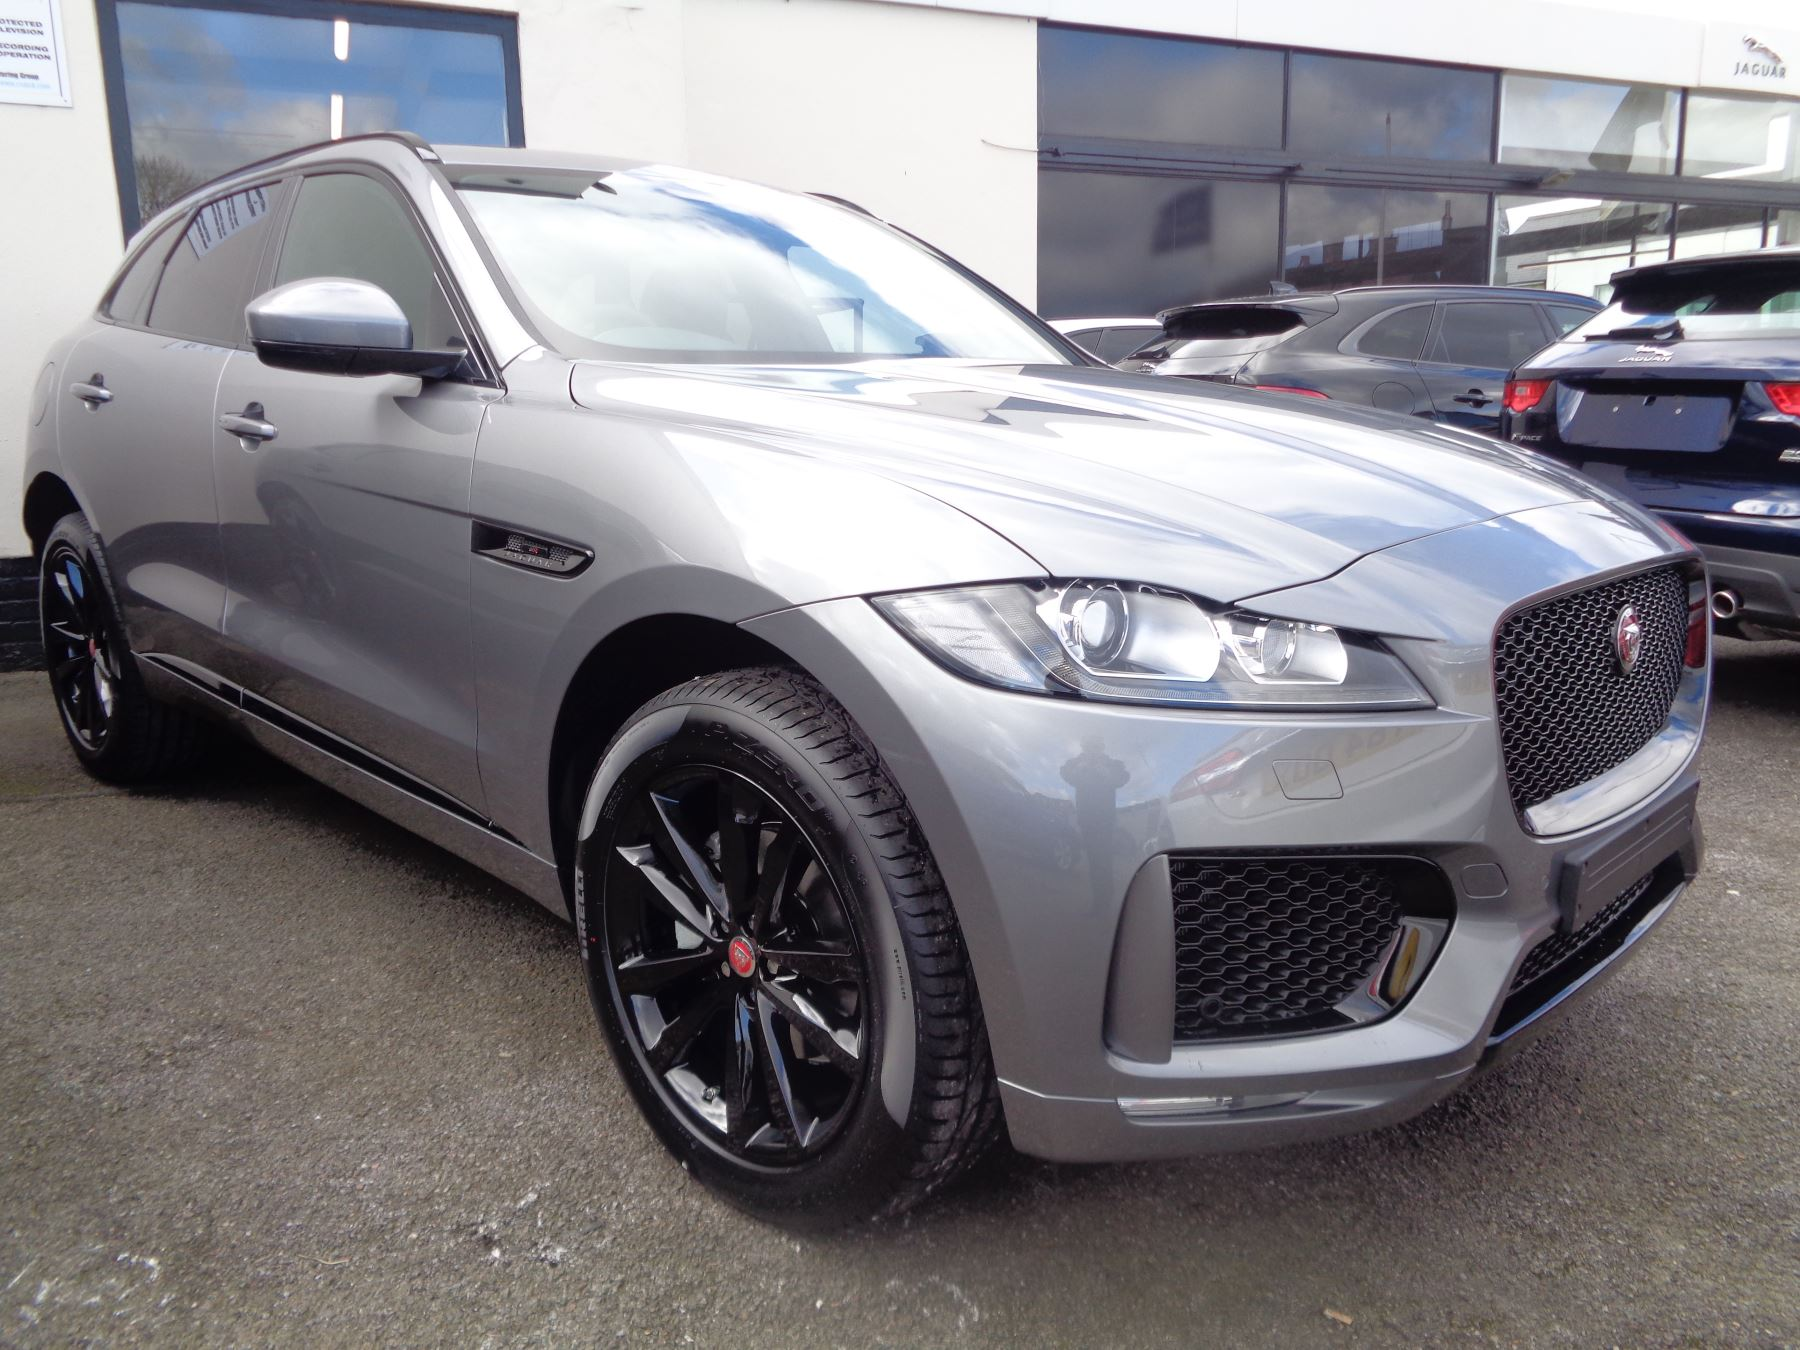 Jaguar F-PACE 2.0 250 Chequered Flag AWD SPECIAL EDITIONS SAVE 3000! Automatic 5 door Estate (2020)